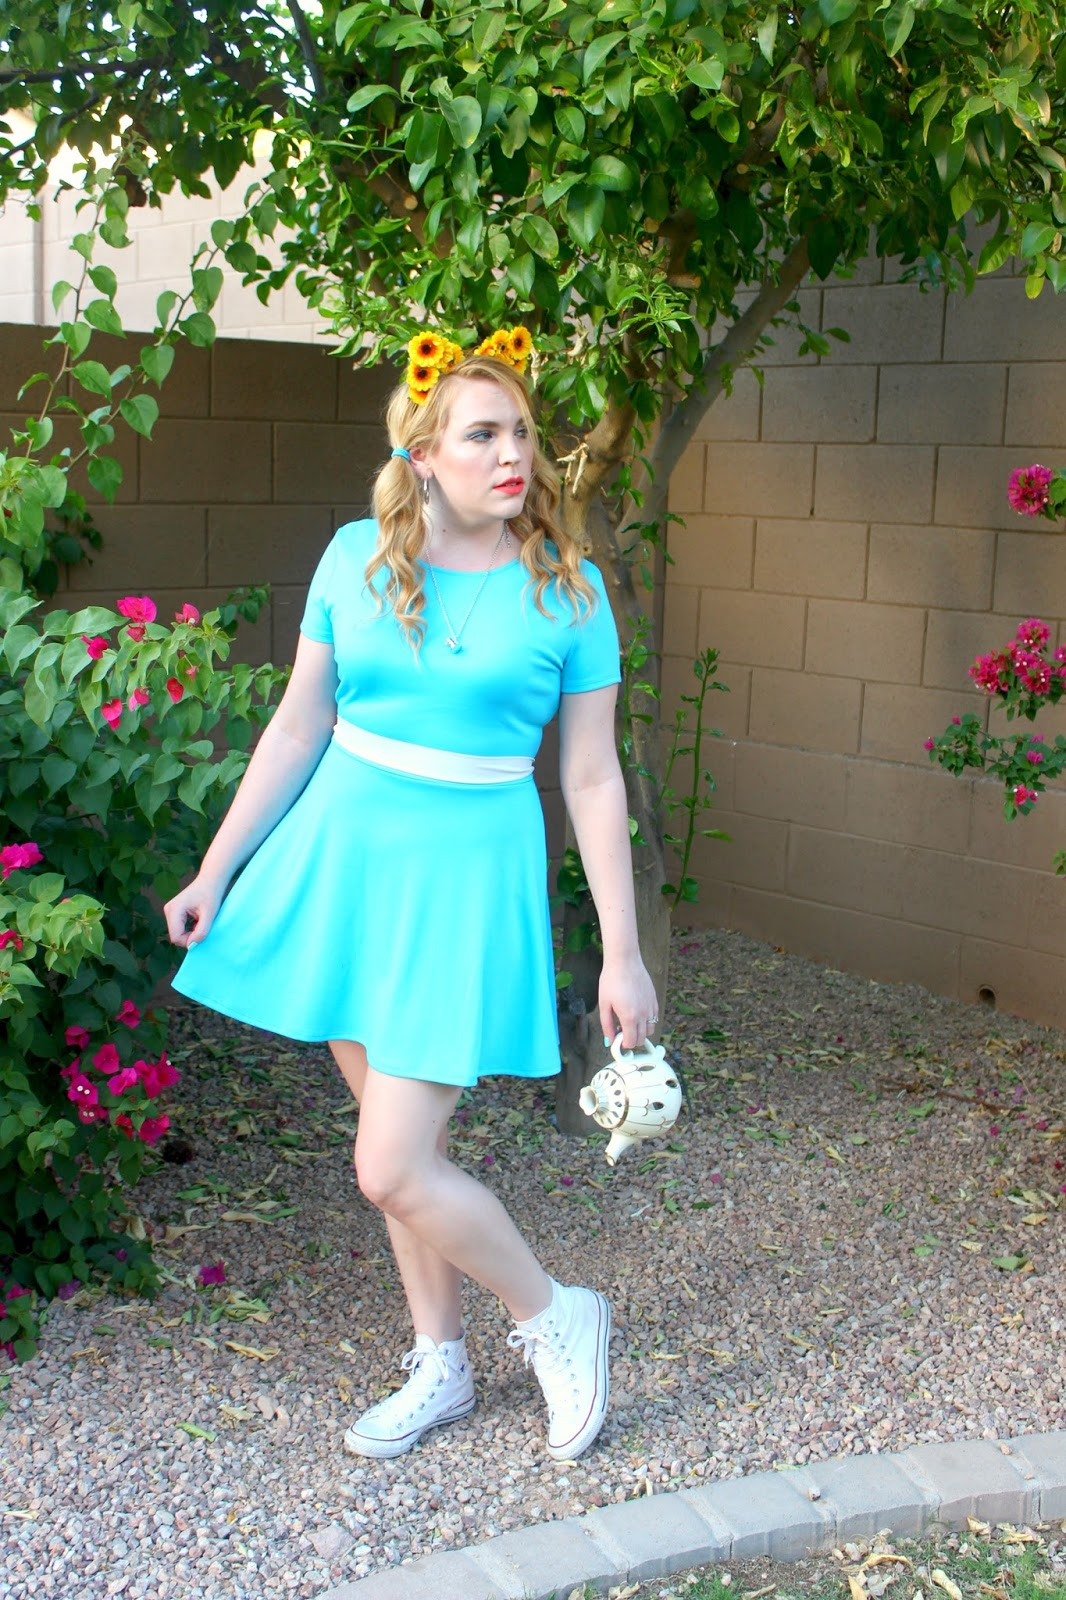 Diaries of a Sunflower: Alice in Wonderland Inspired Outfits!